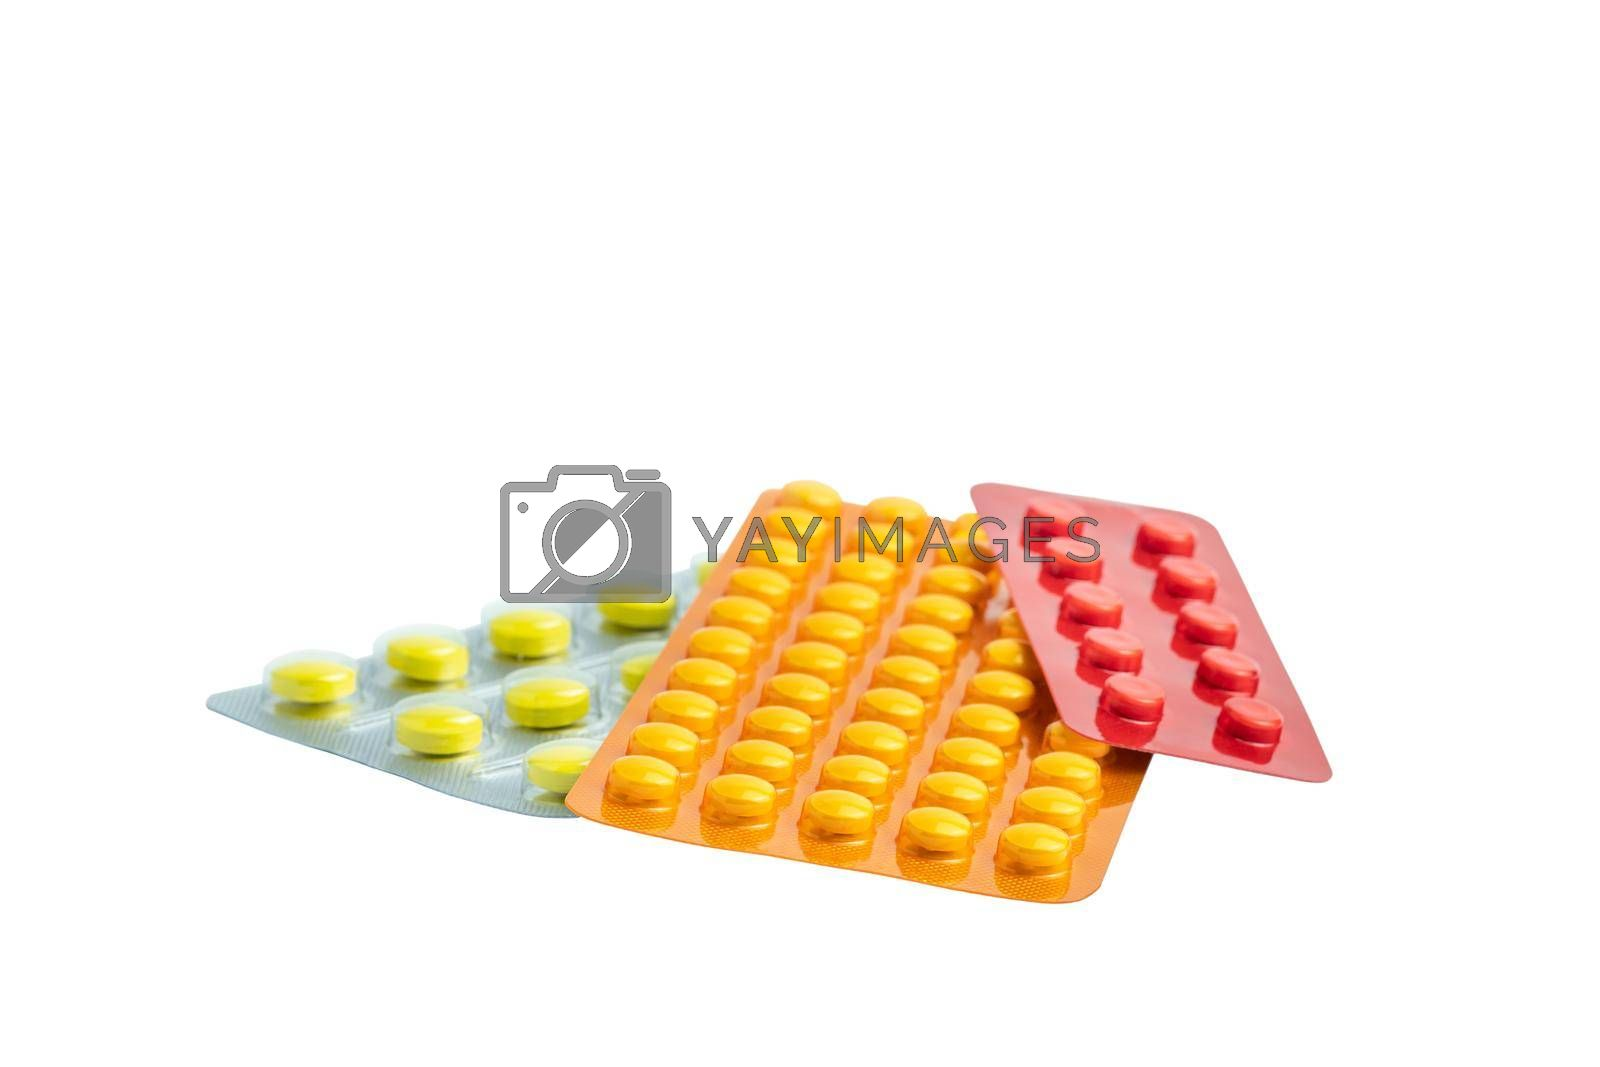 Group of medicines isolated on white background without shadow. Medicinal anti-inflammatory drugs in multi-colored packaging. Pharmacy pharmacological preparations.